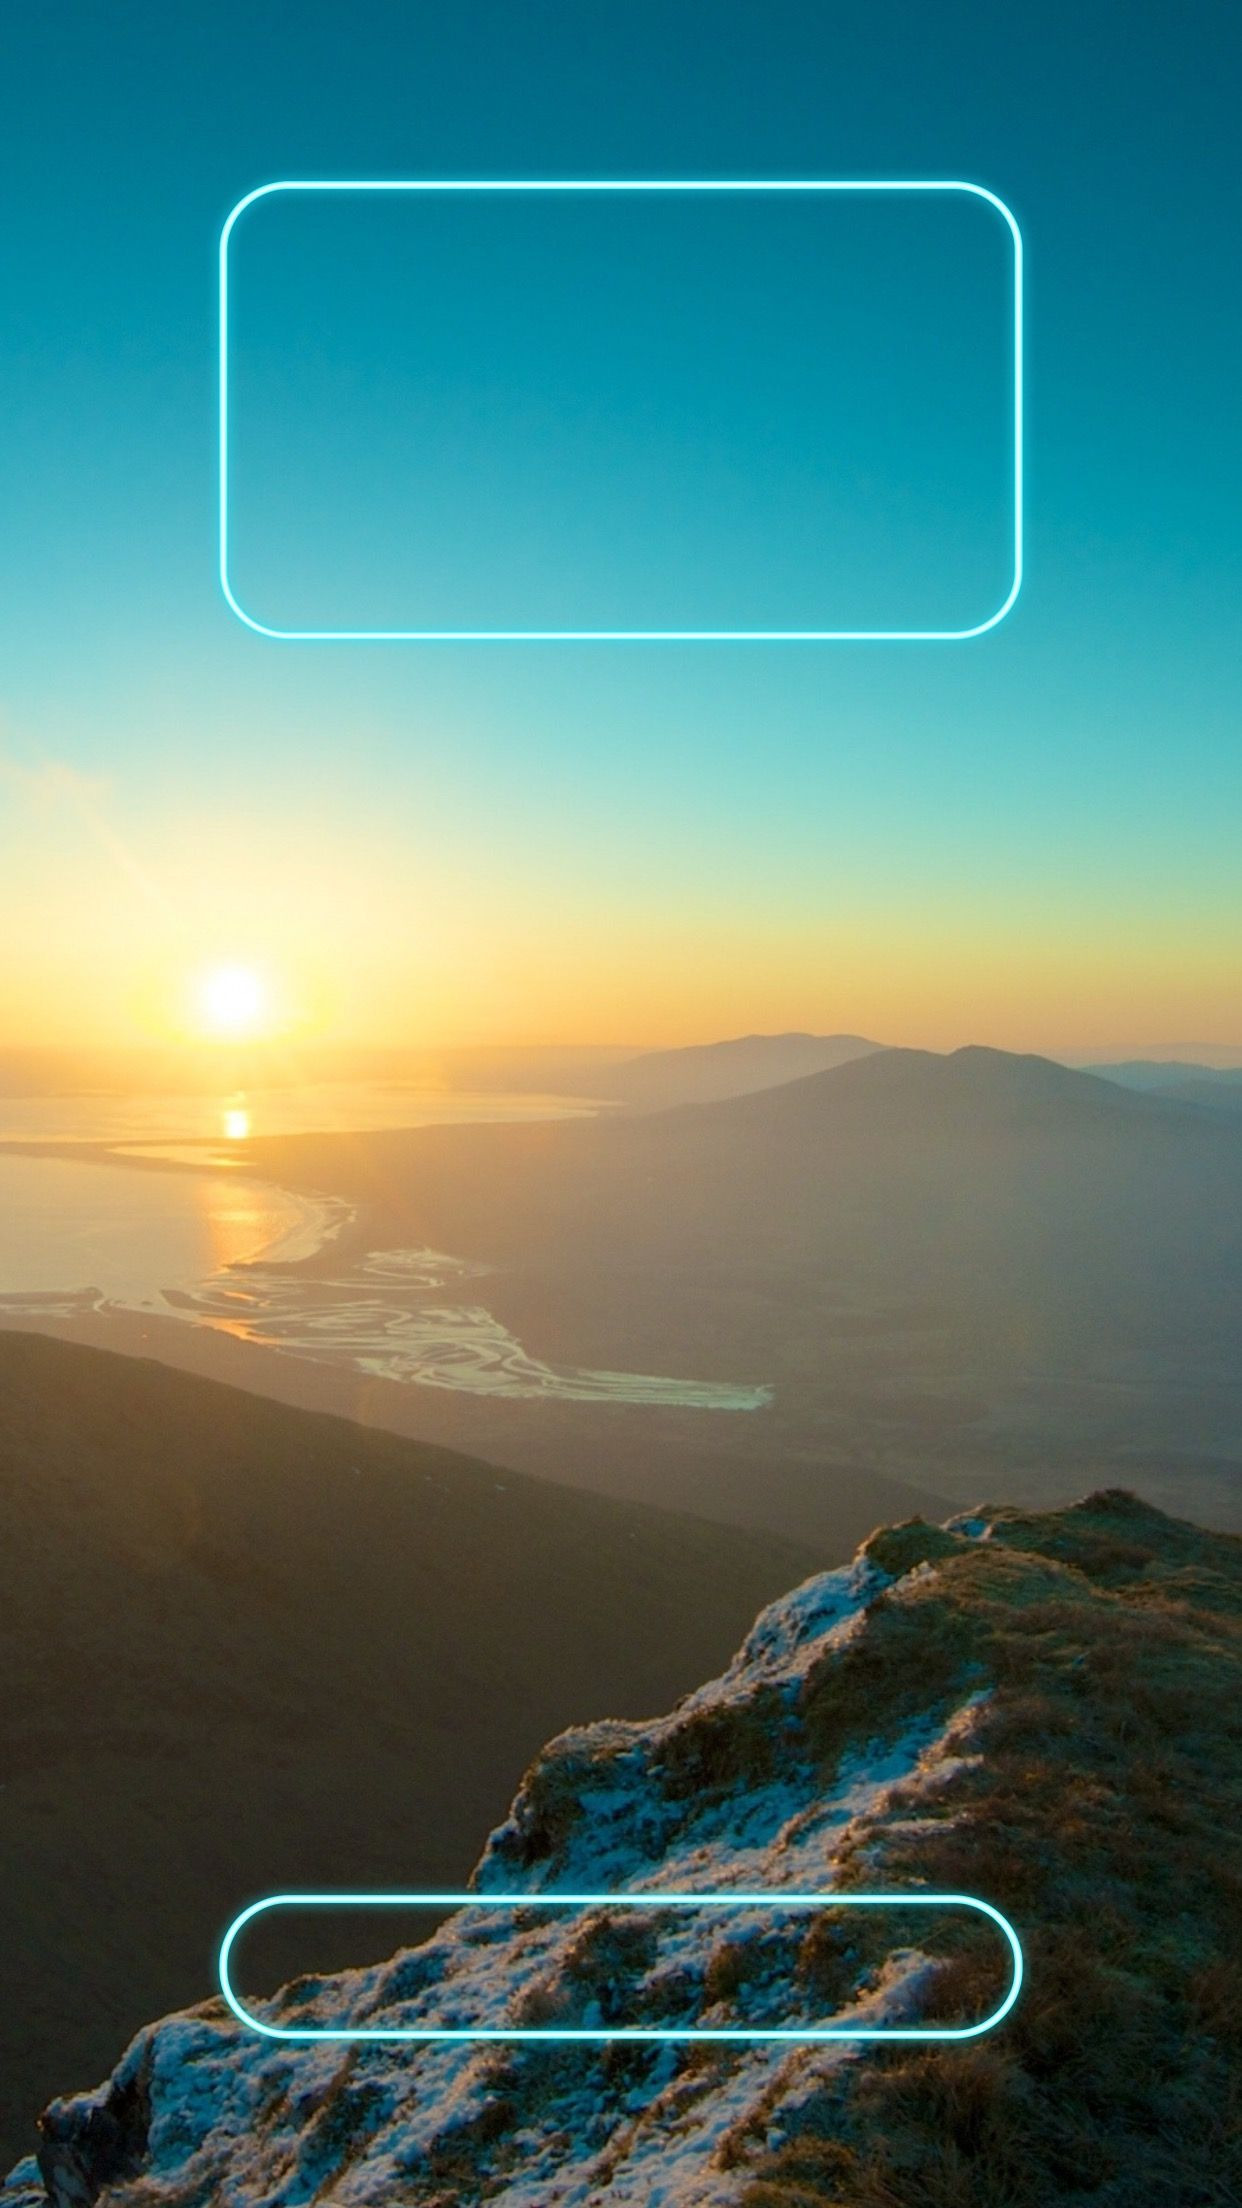 15 Wallpapers with Nature Views for the iPhone 6 Plus